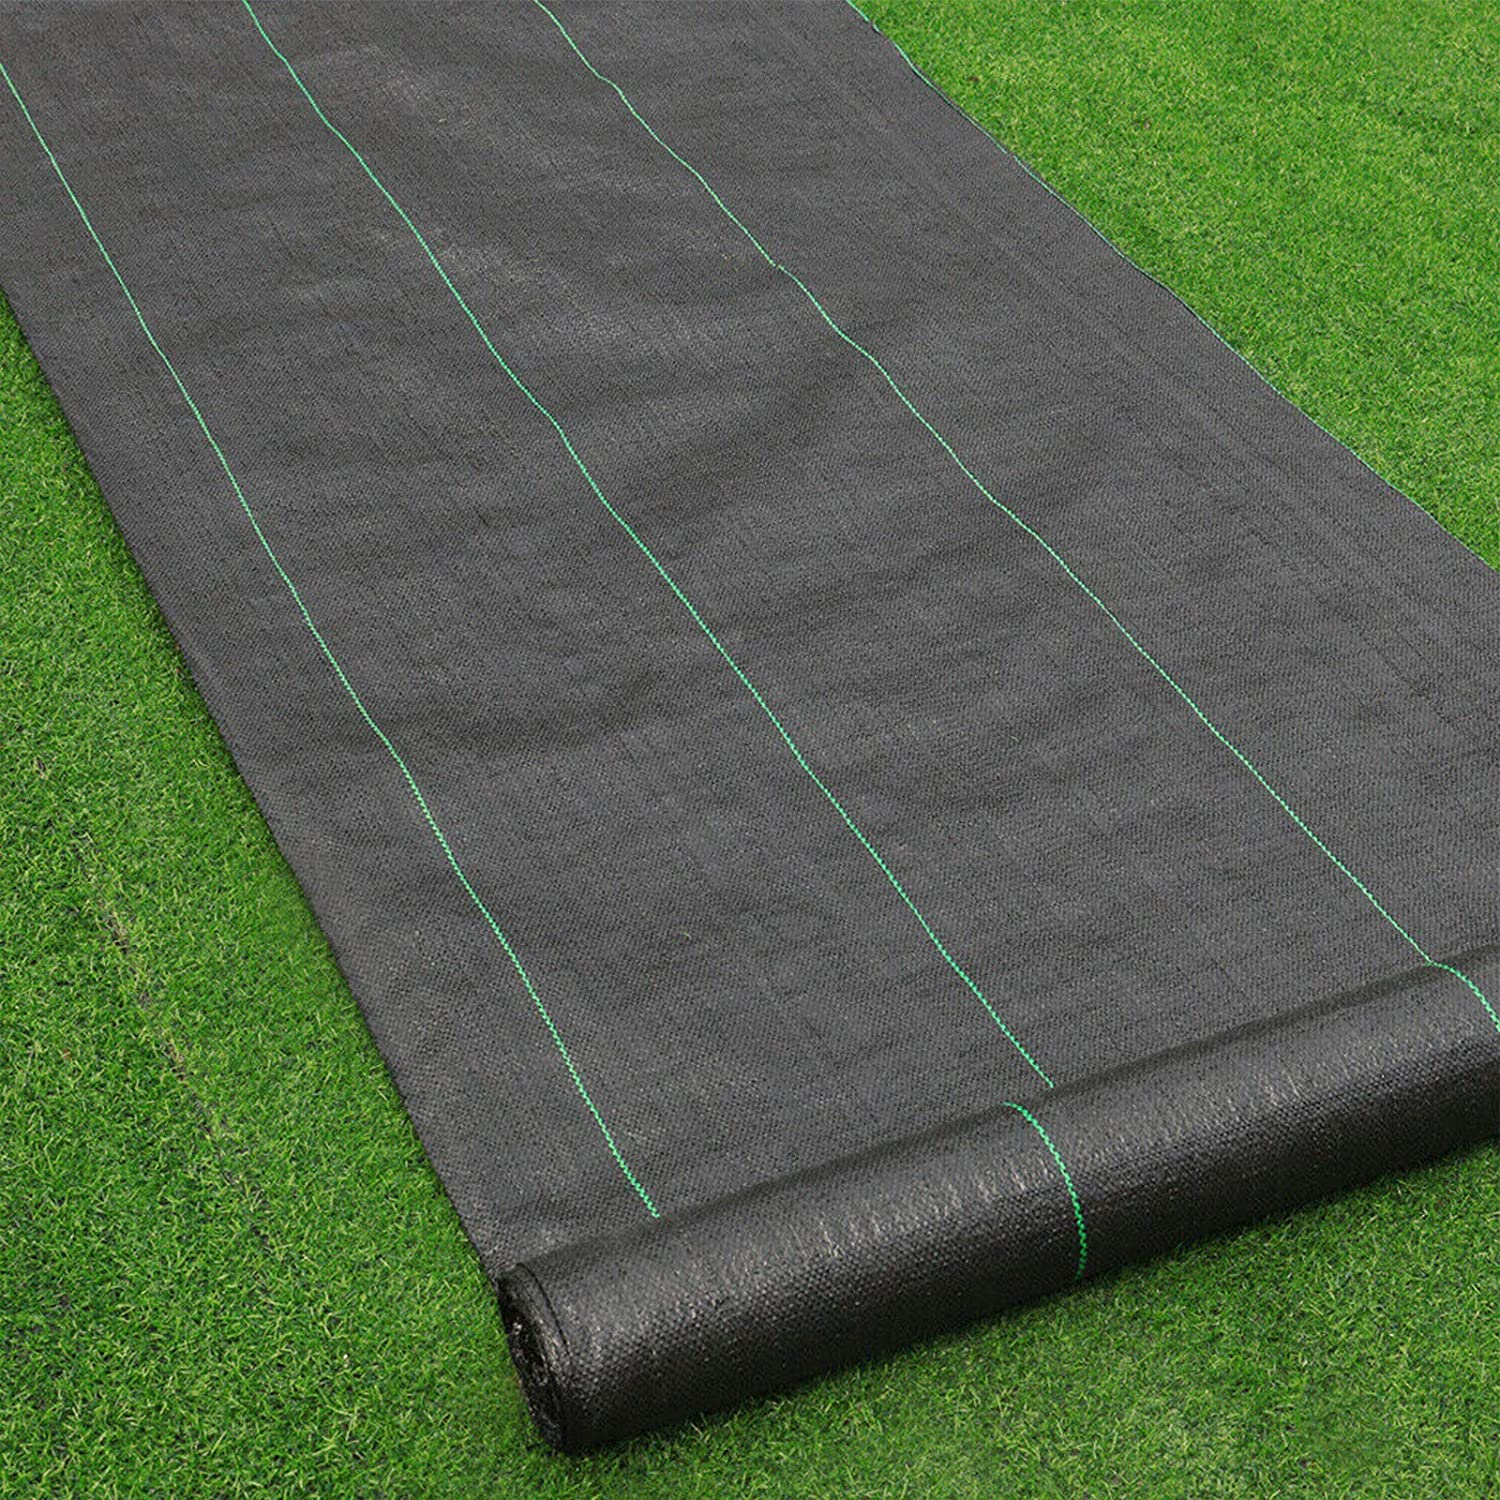 Goasis Lawn Weed Barrier Control Fabric Max Free shipping on posting reviews 65% OFF Cover Membrane Ground Ga